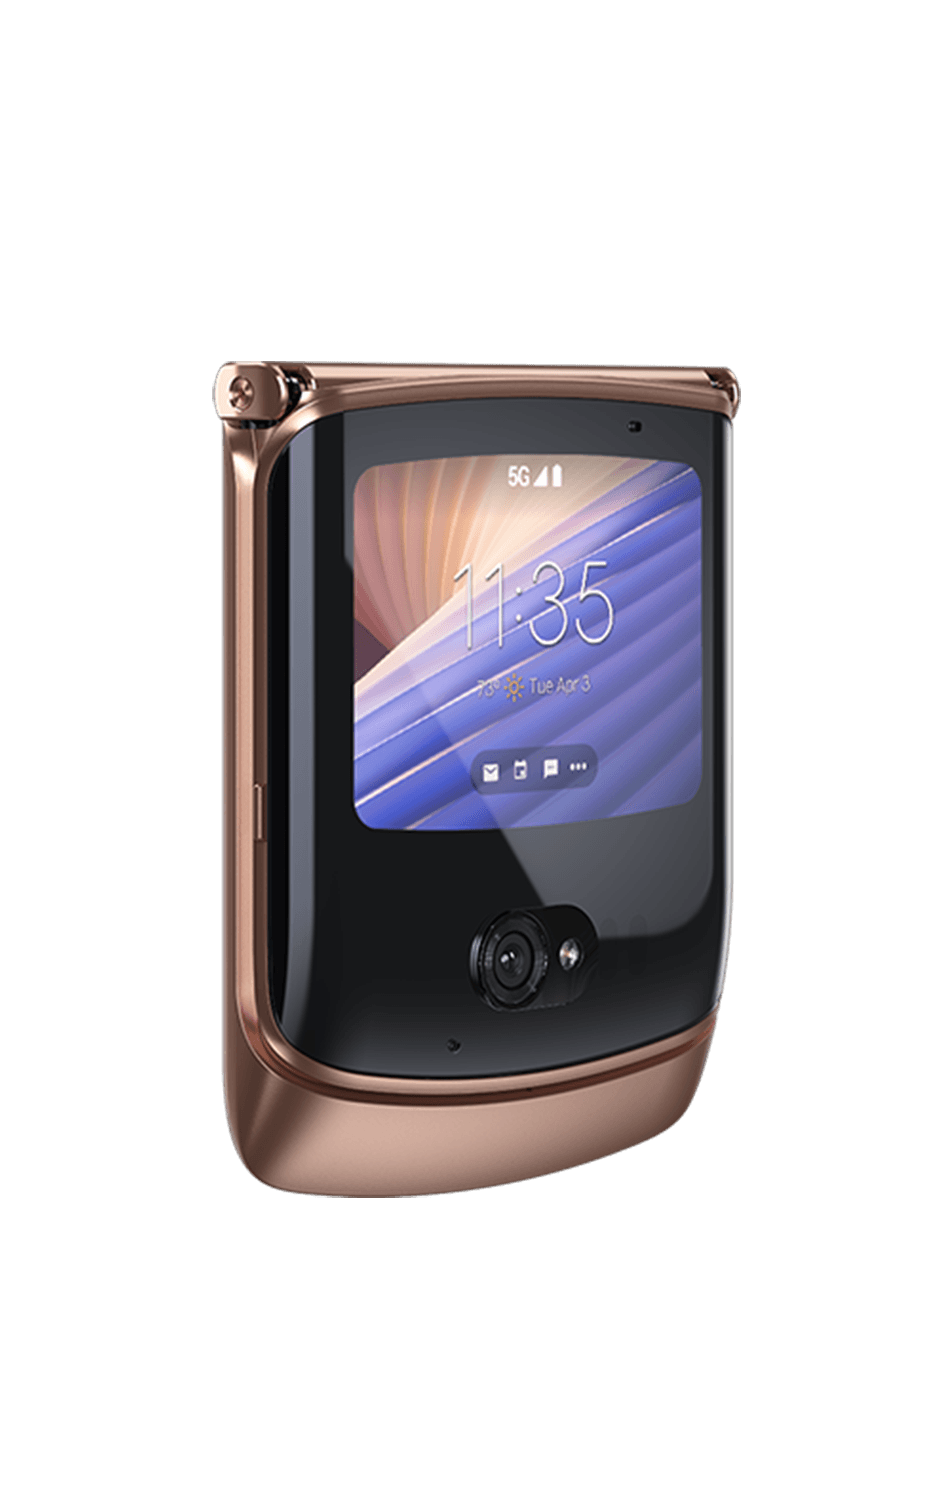 Latest leak points to both AT&T and T-Mobile stocking the upcoming Motorola Razr 5G - TalkAndroid.com